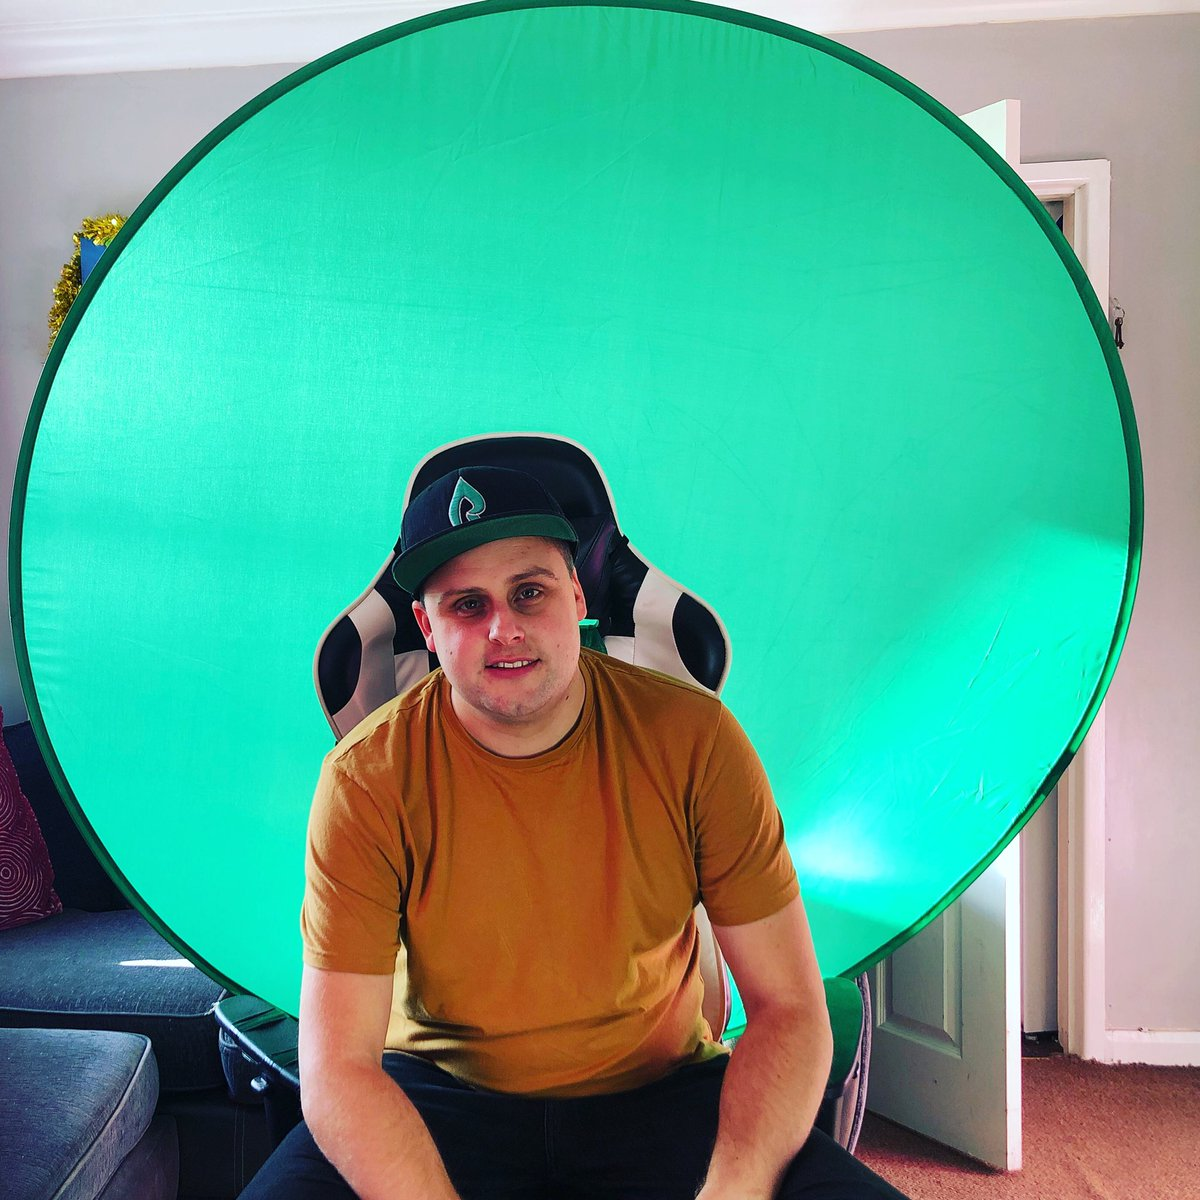 SensationLIVE - Amazing green screens from @limeprogaming  head across check them out